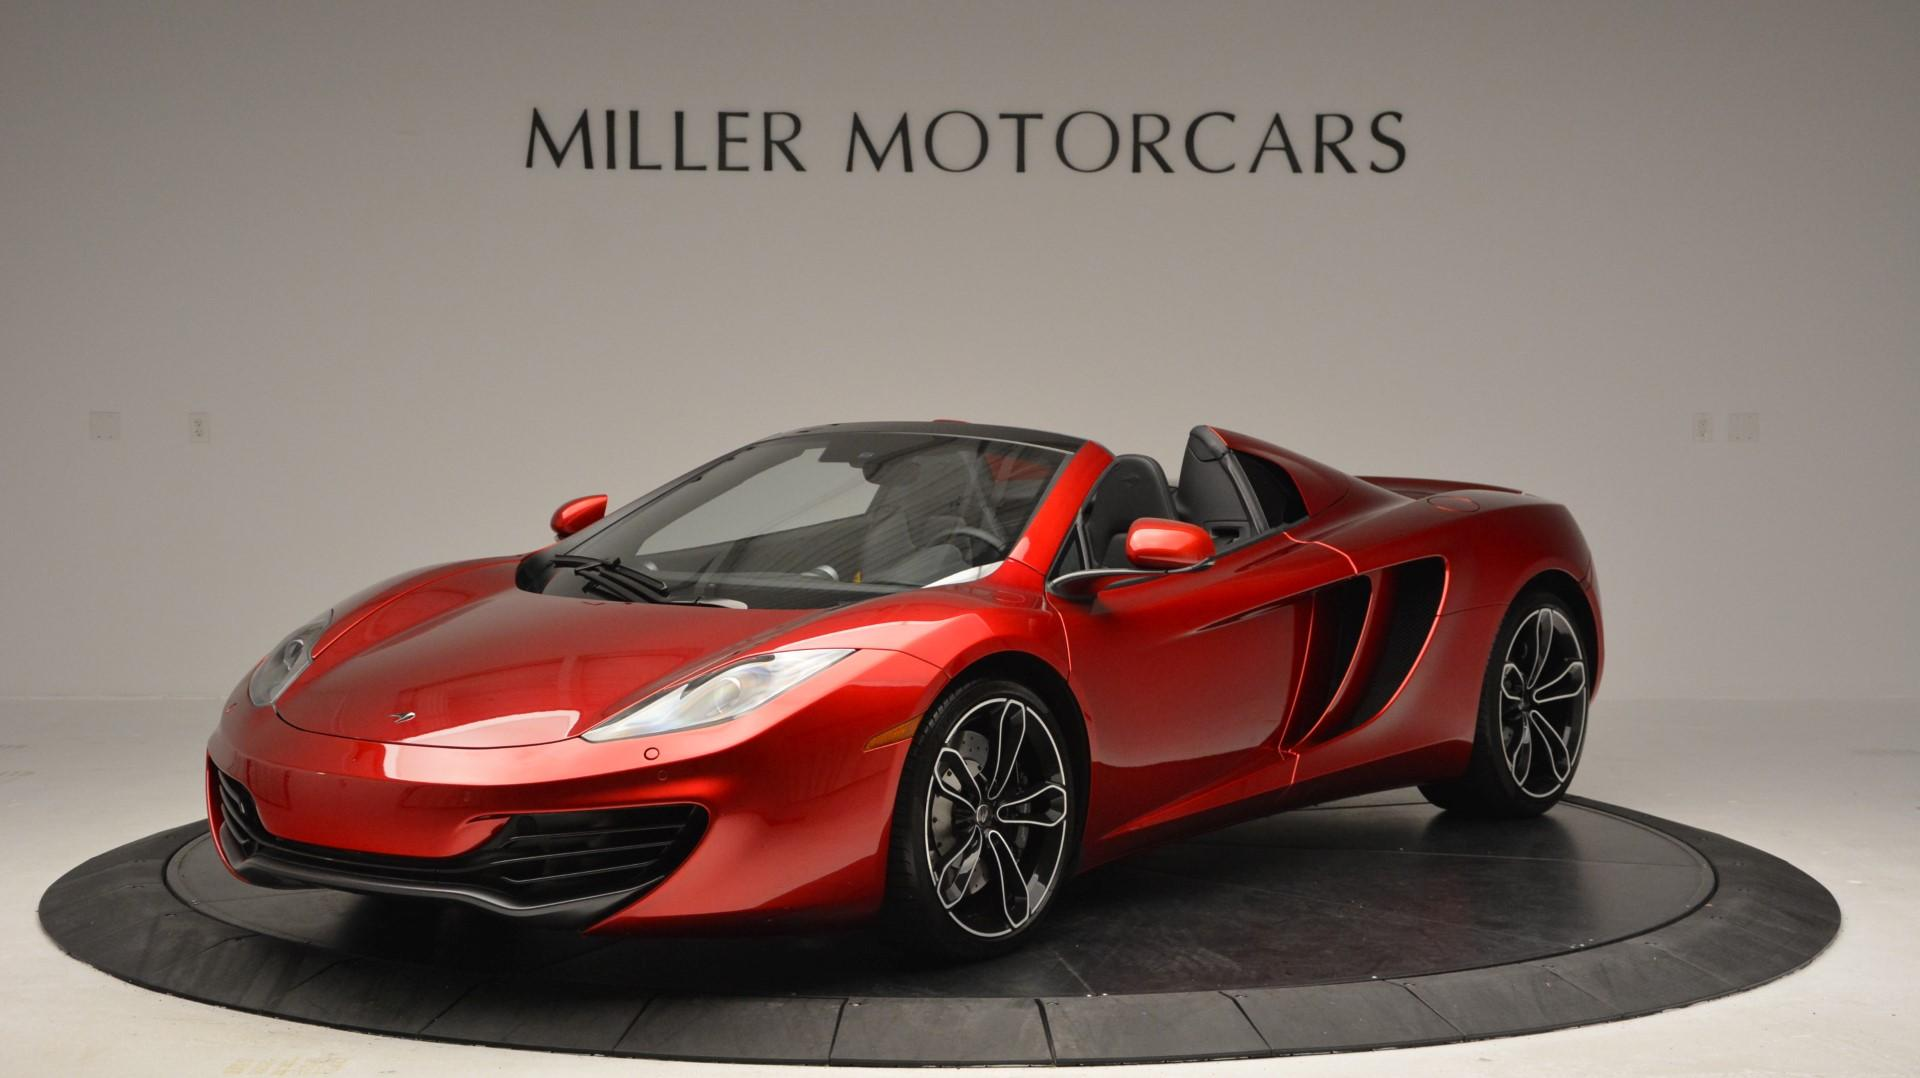 Used 2013 McLaren 12C Spider for sale Sold at McLaren Greenwich in Greenwich CT 06830 1